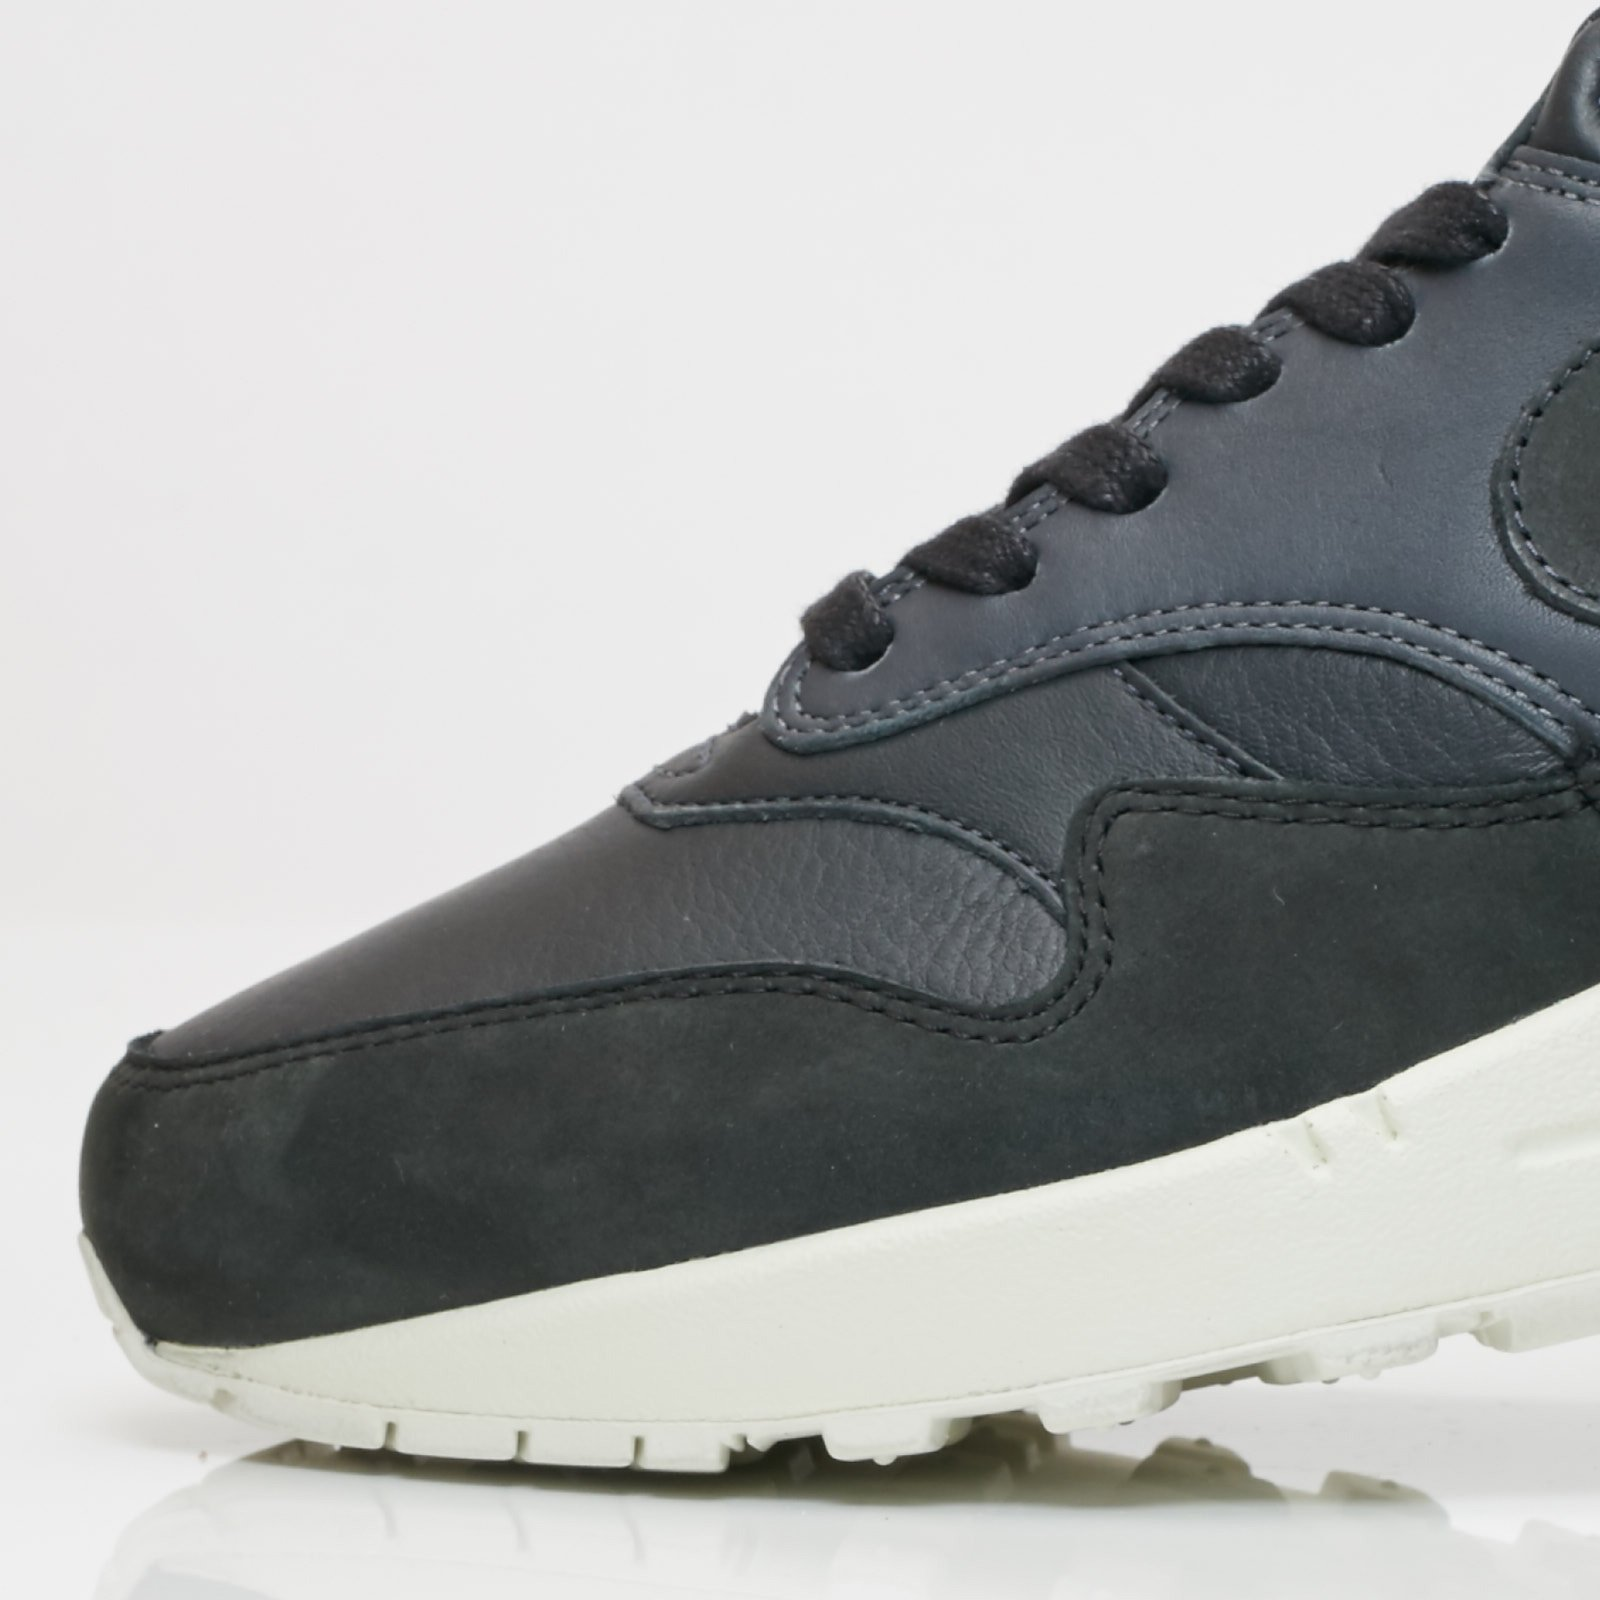 Nike Air Max 1 Pinnacle - 859554-004 - Sneakersnstuff  471641ac9